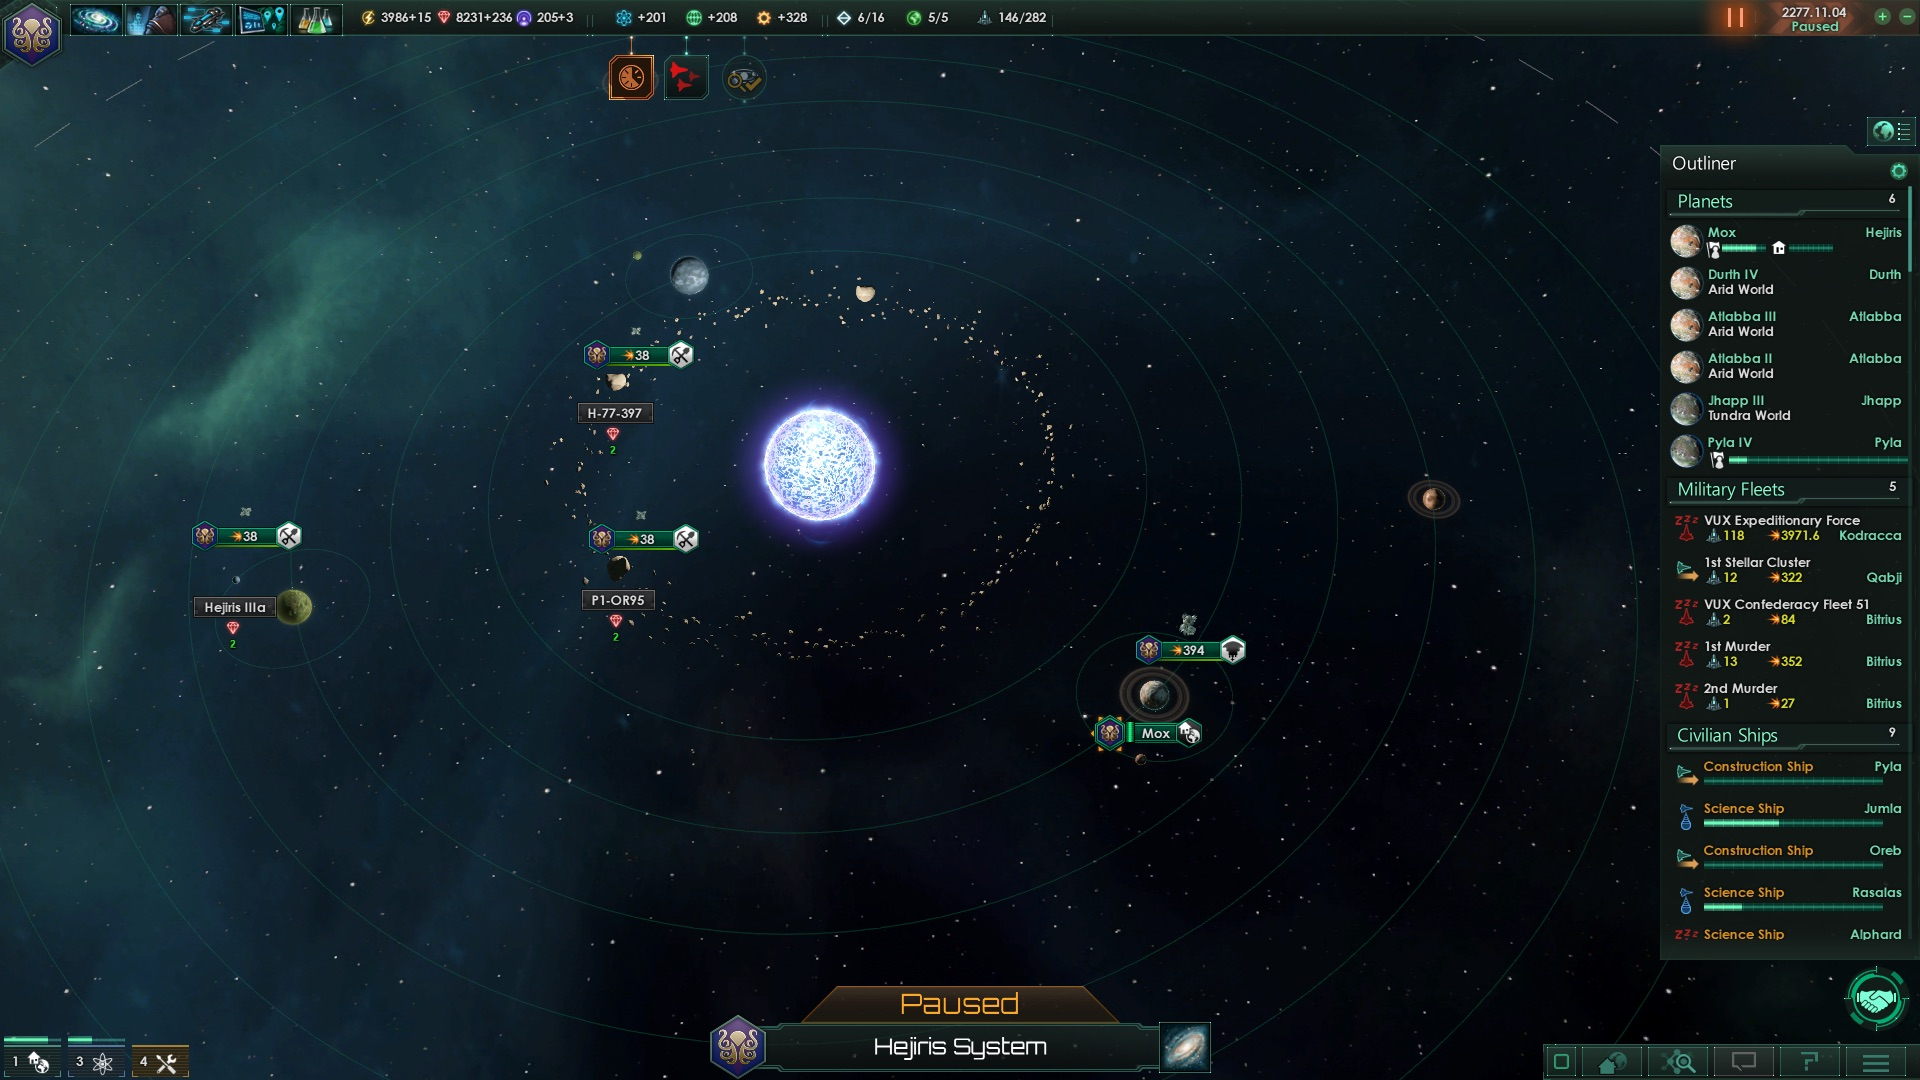 Planetary map